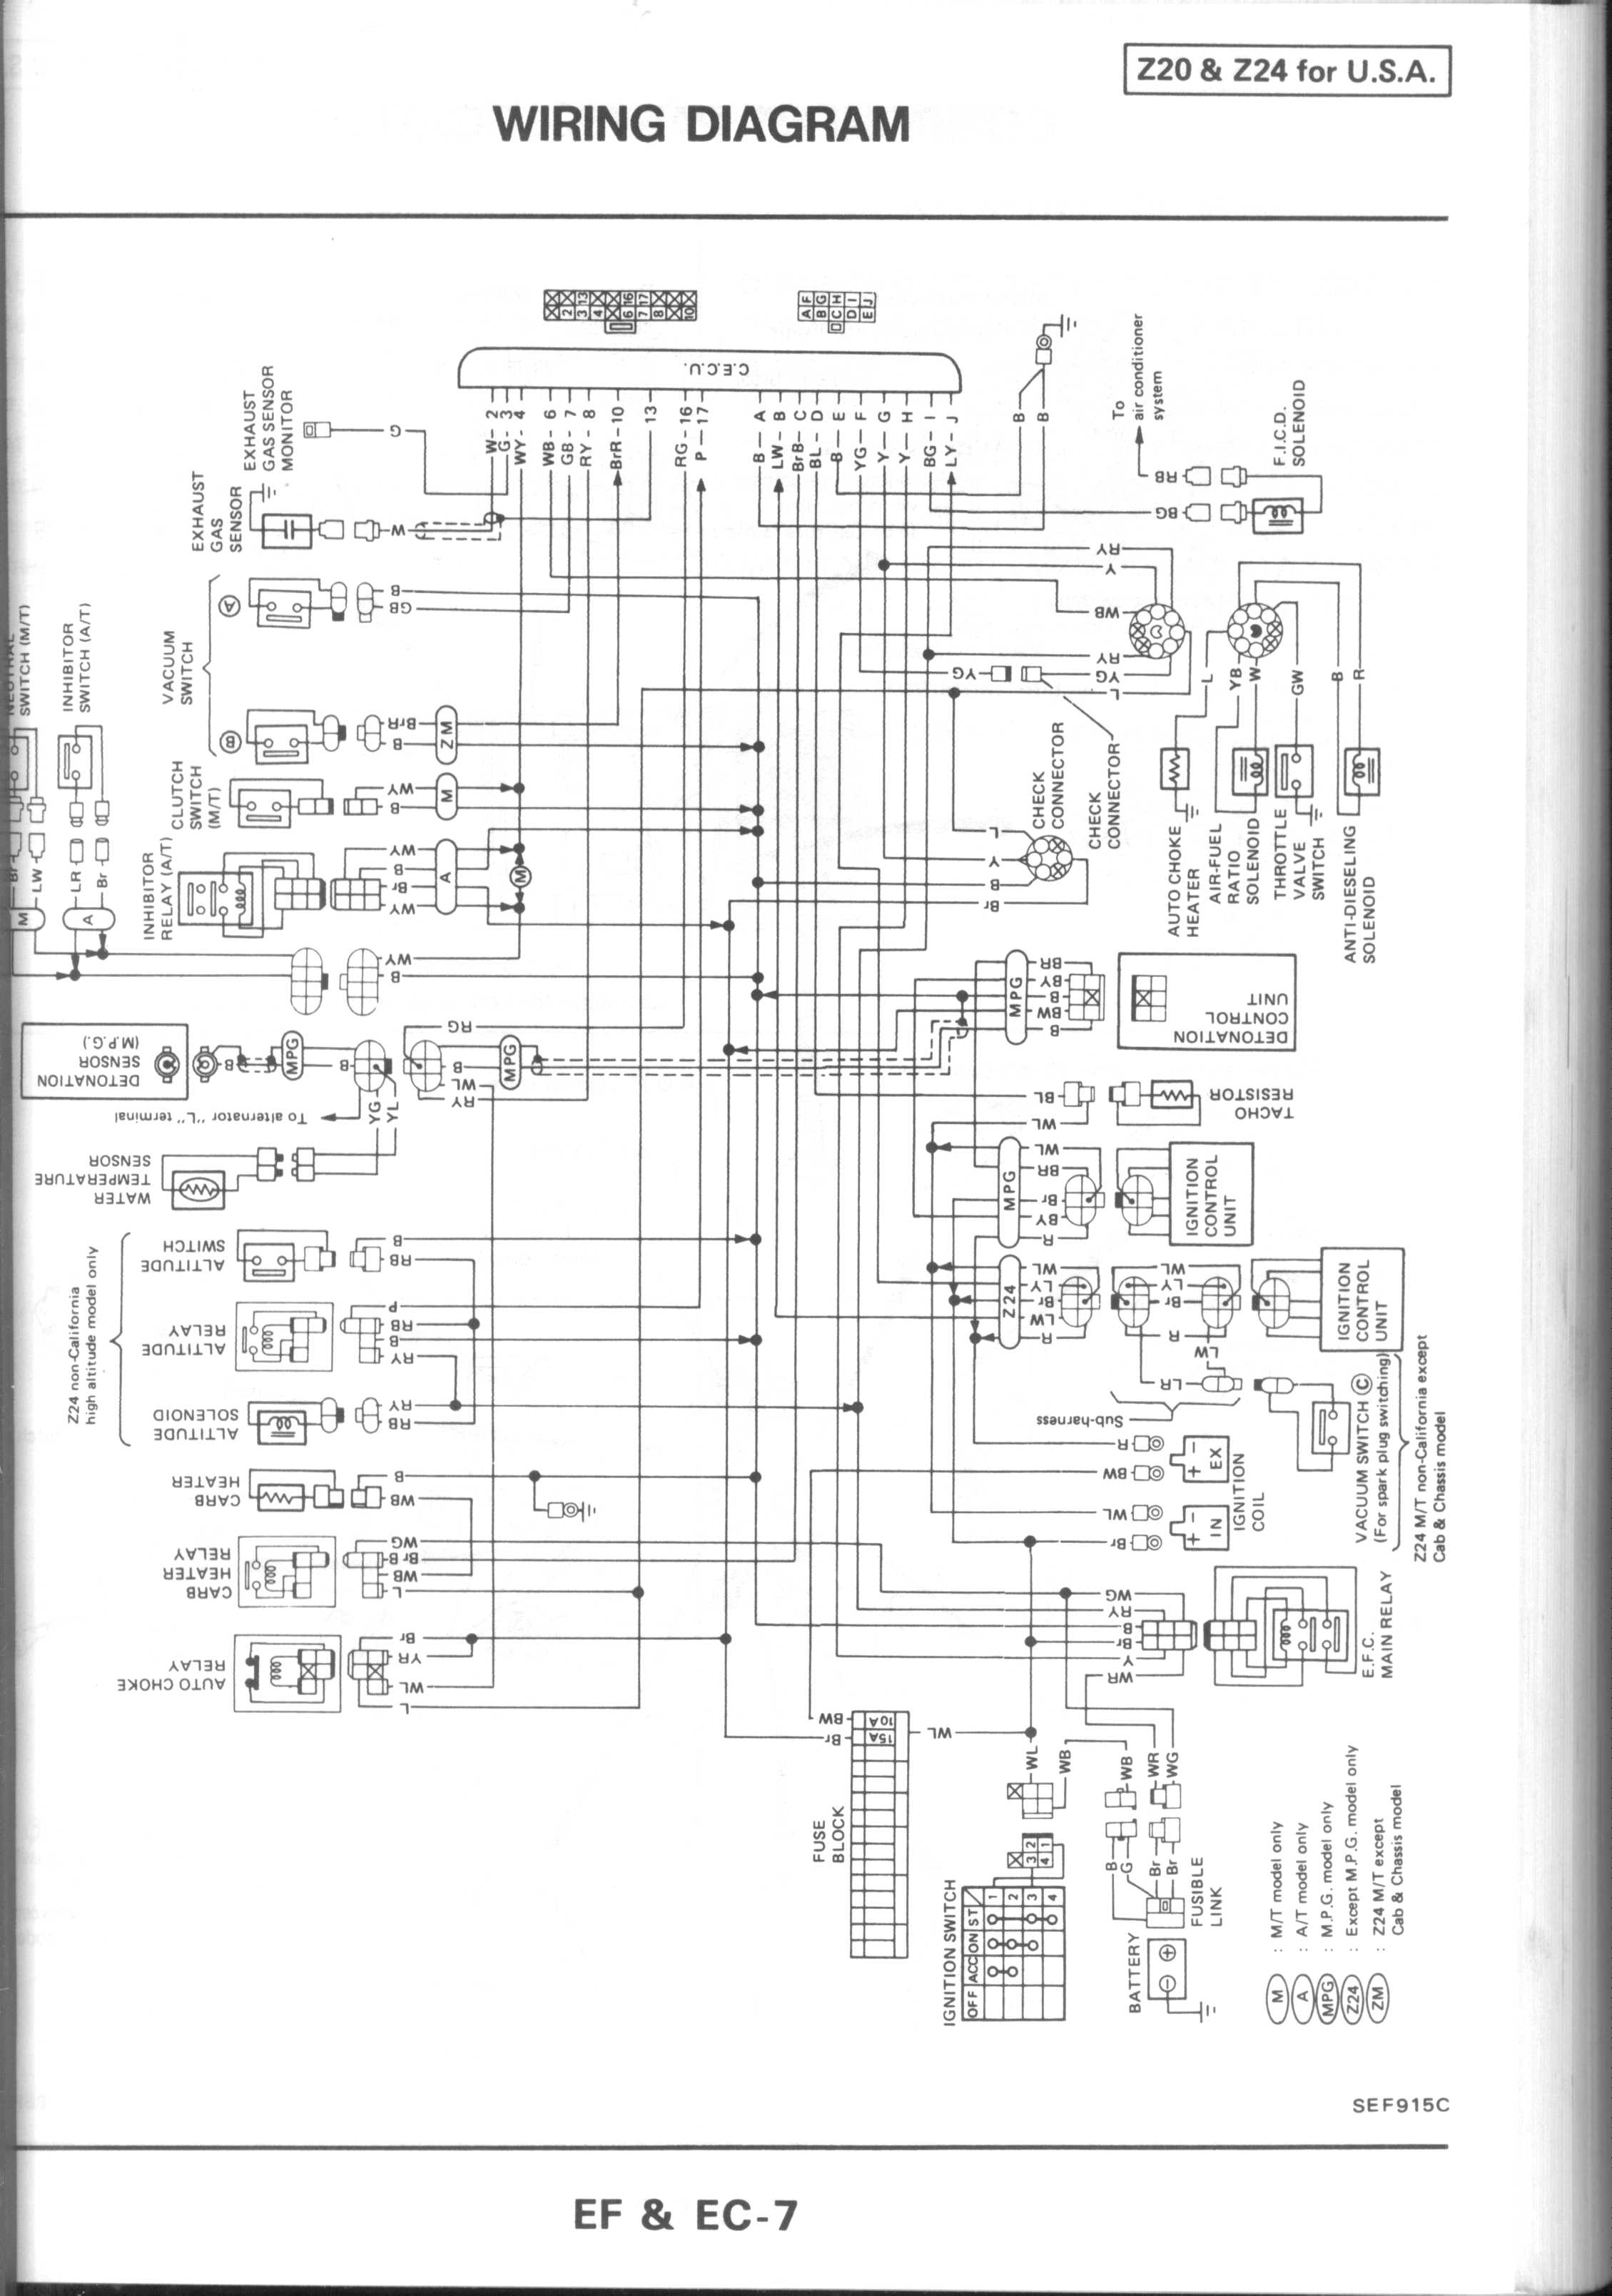 Nissan Nut 1988 Chevrolet K2500 Wiring Diagram